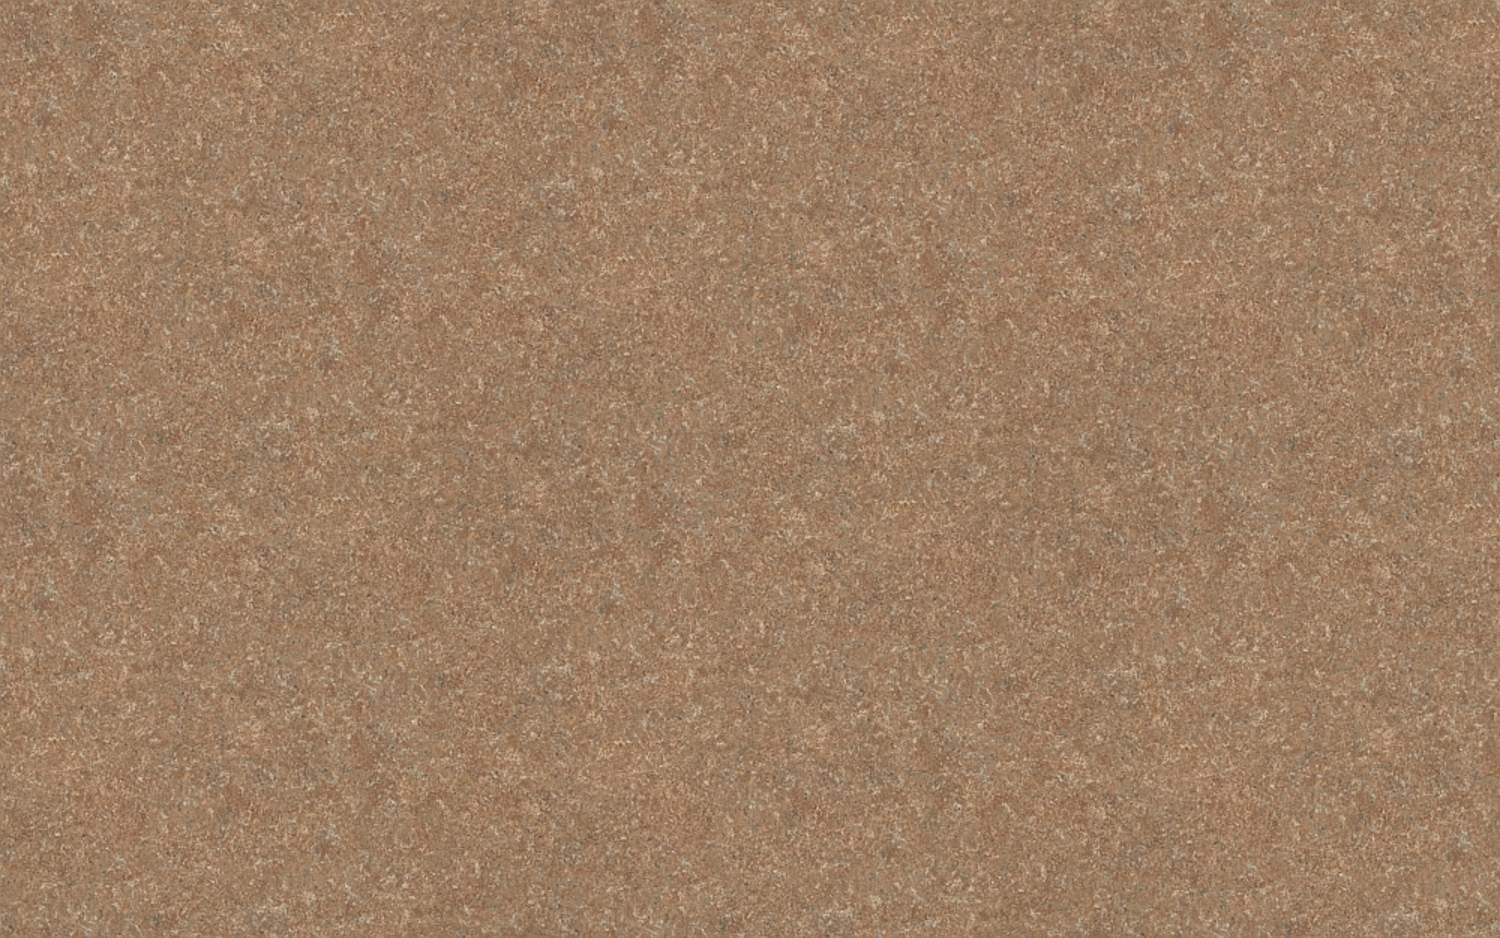 Vt industries 1826 35 10 10 foot blank valencia edge for Wilsonart laminate cost per square foot